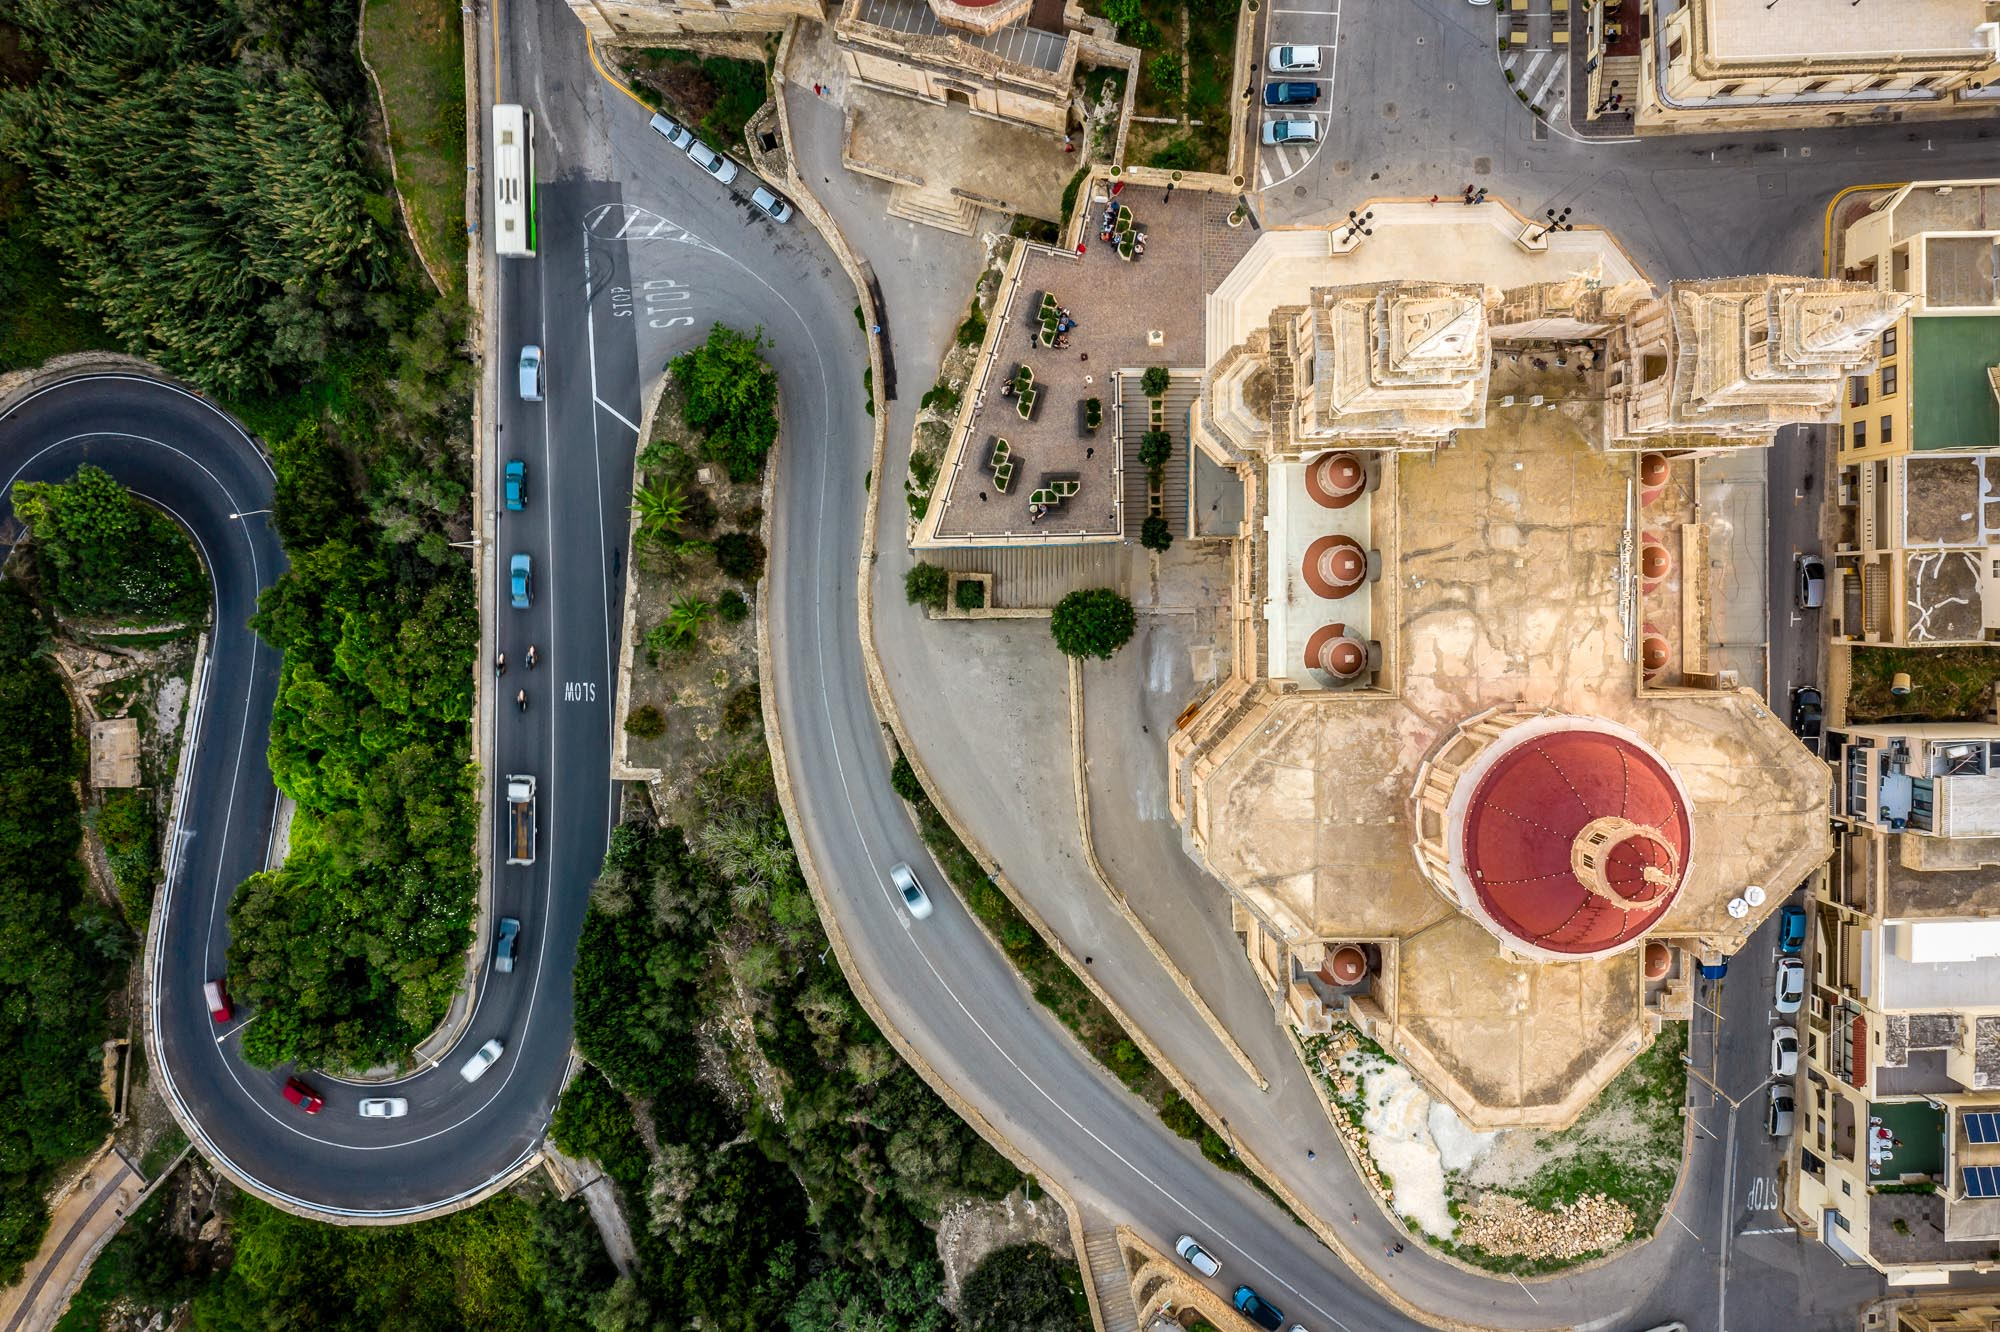 Malta Aerial Church